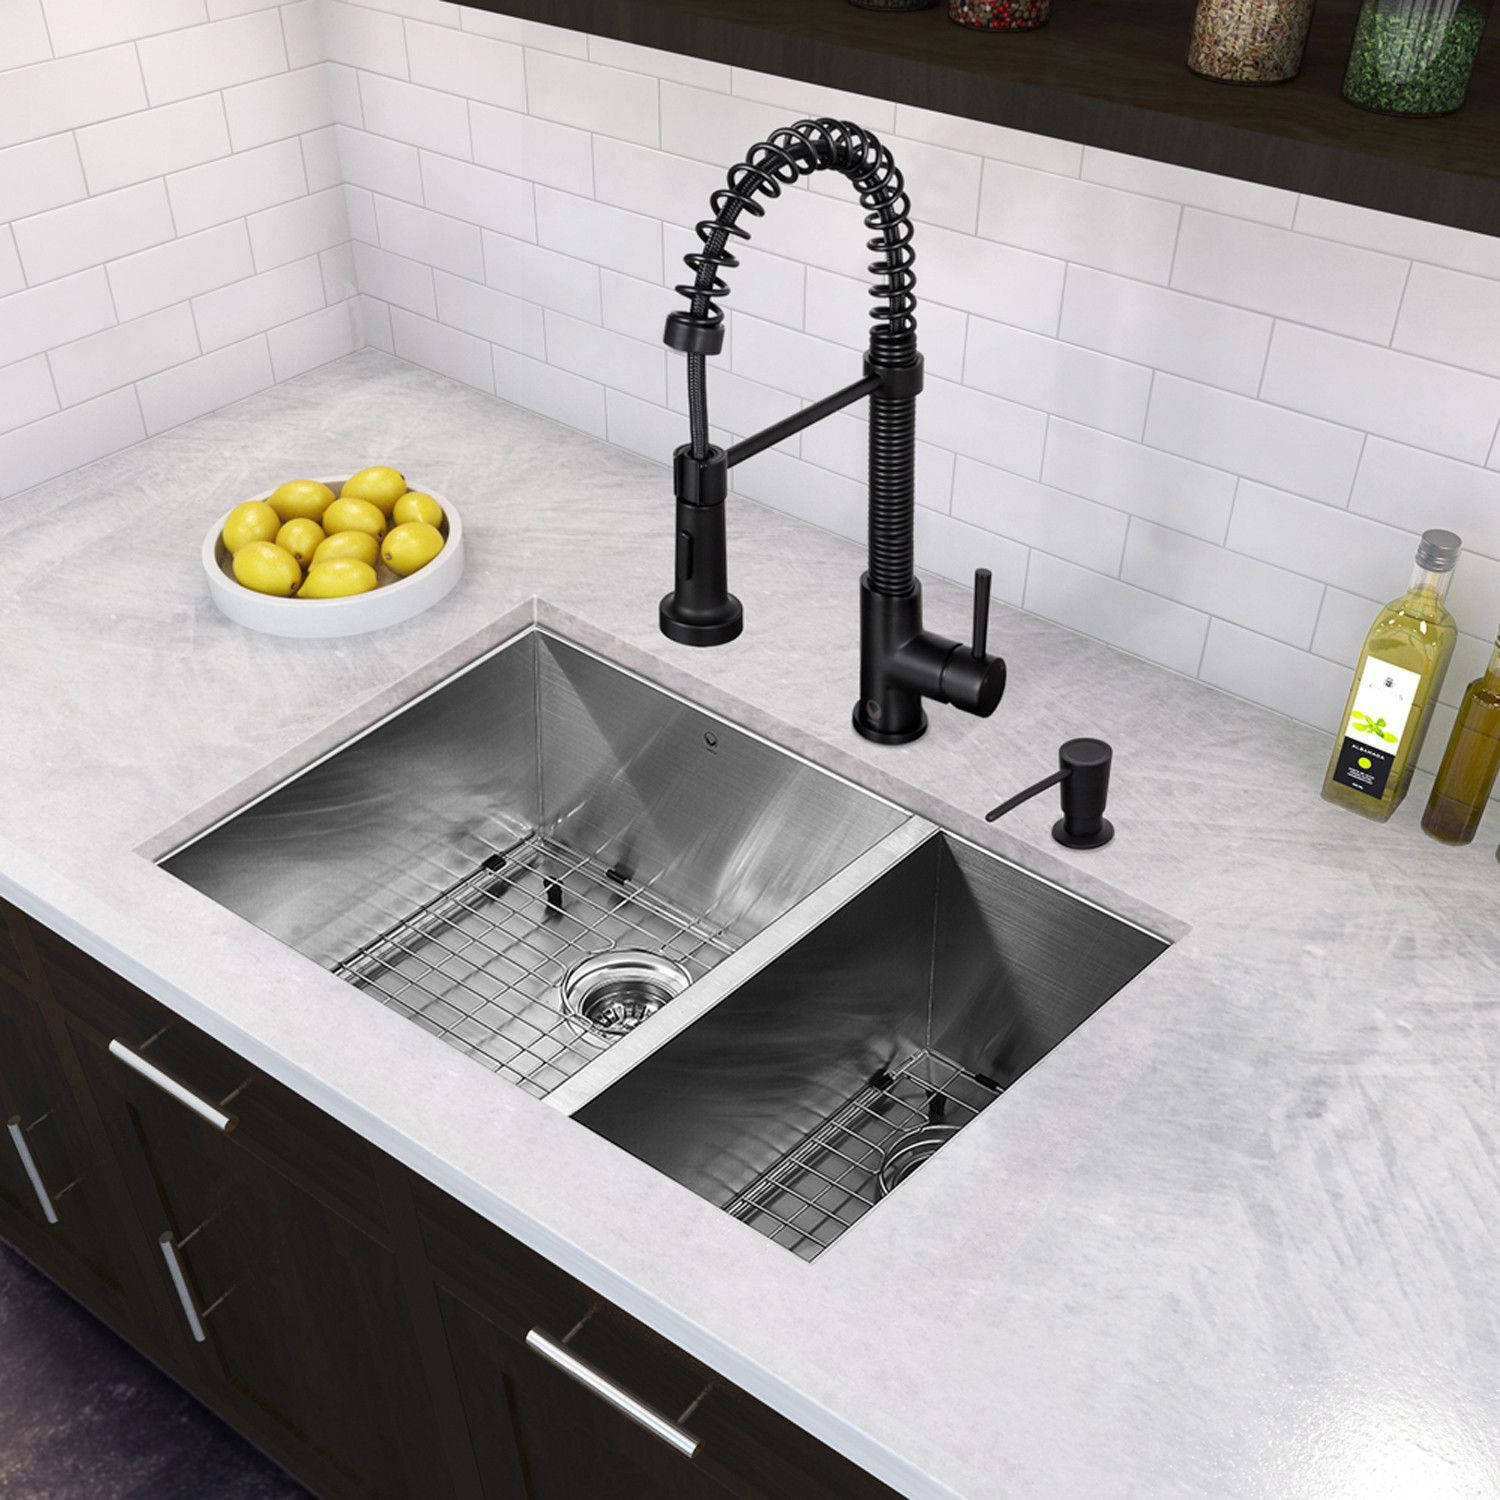 All In One 29 Inch Stainless Steel Undermount Kitchen Sink And